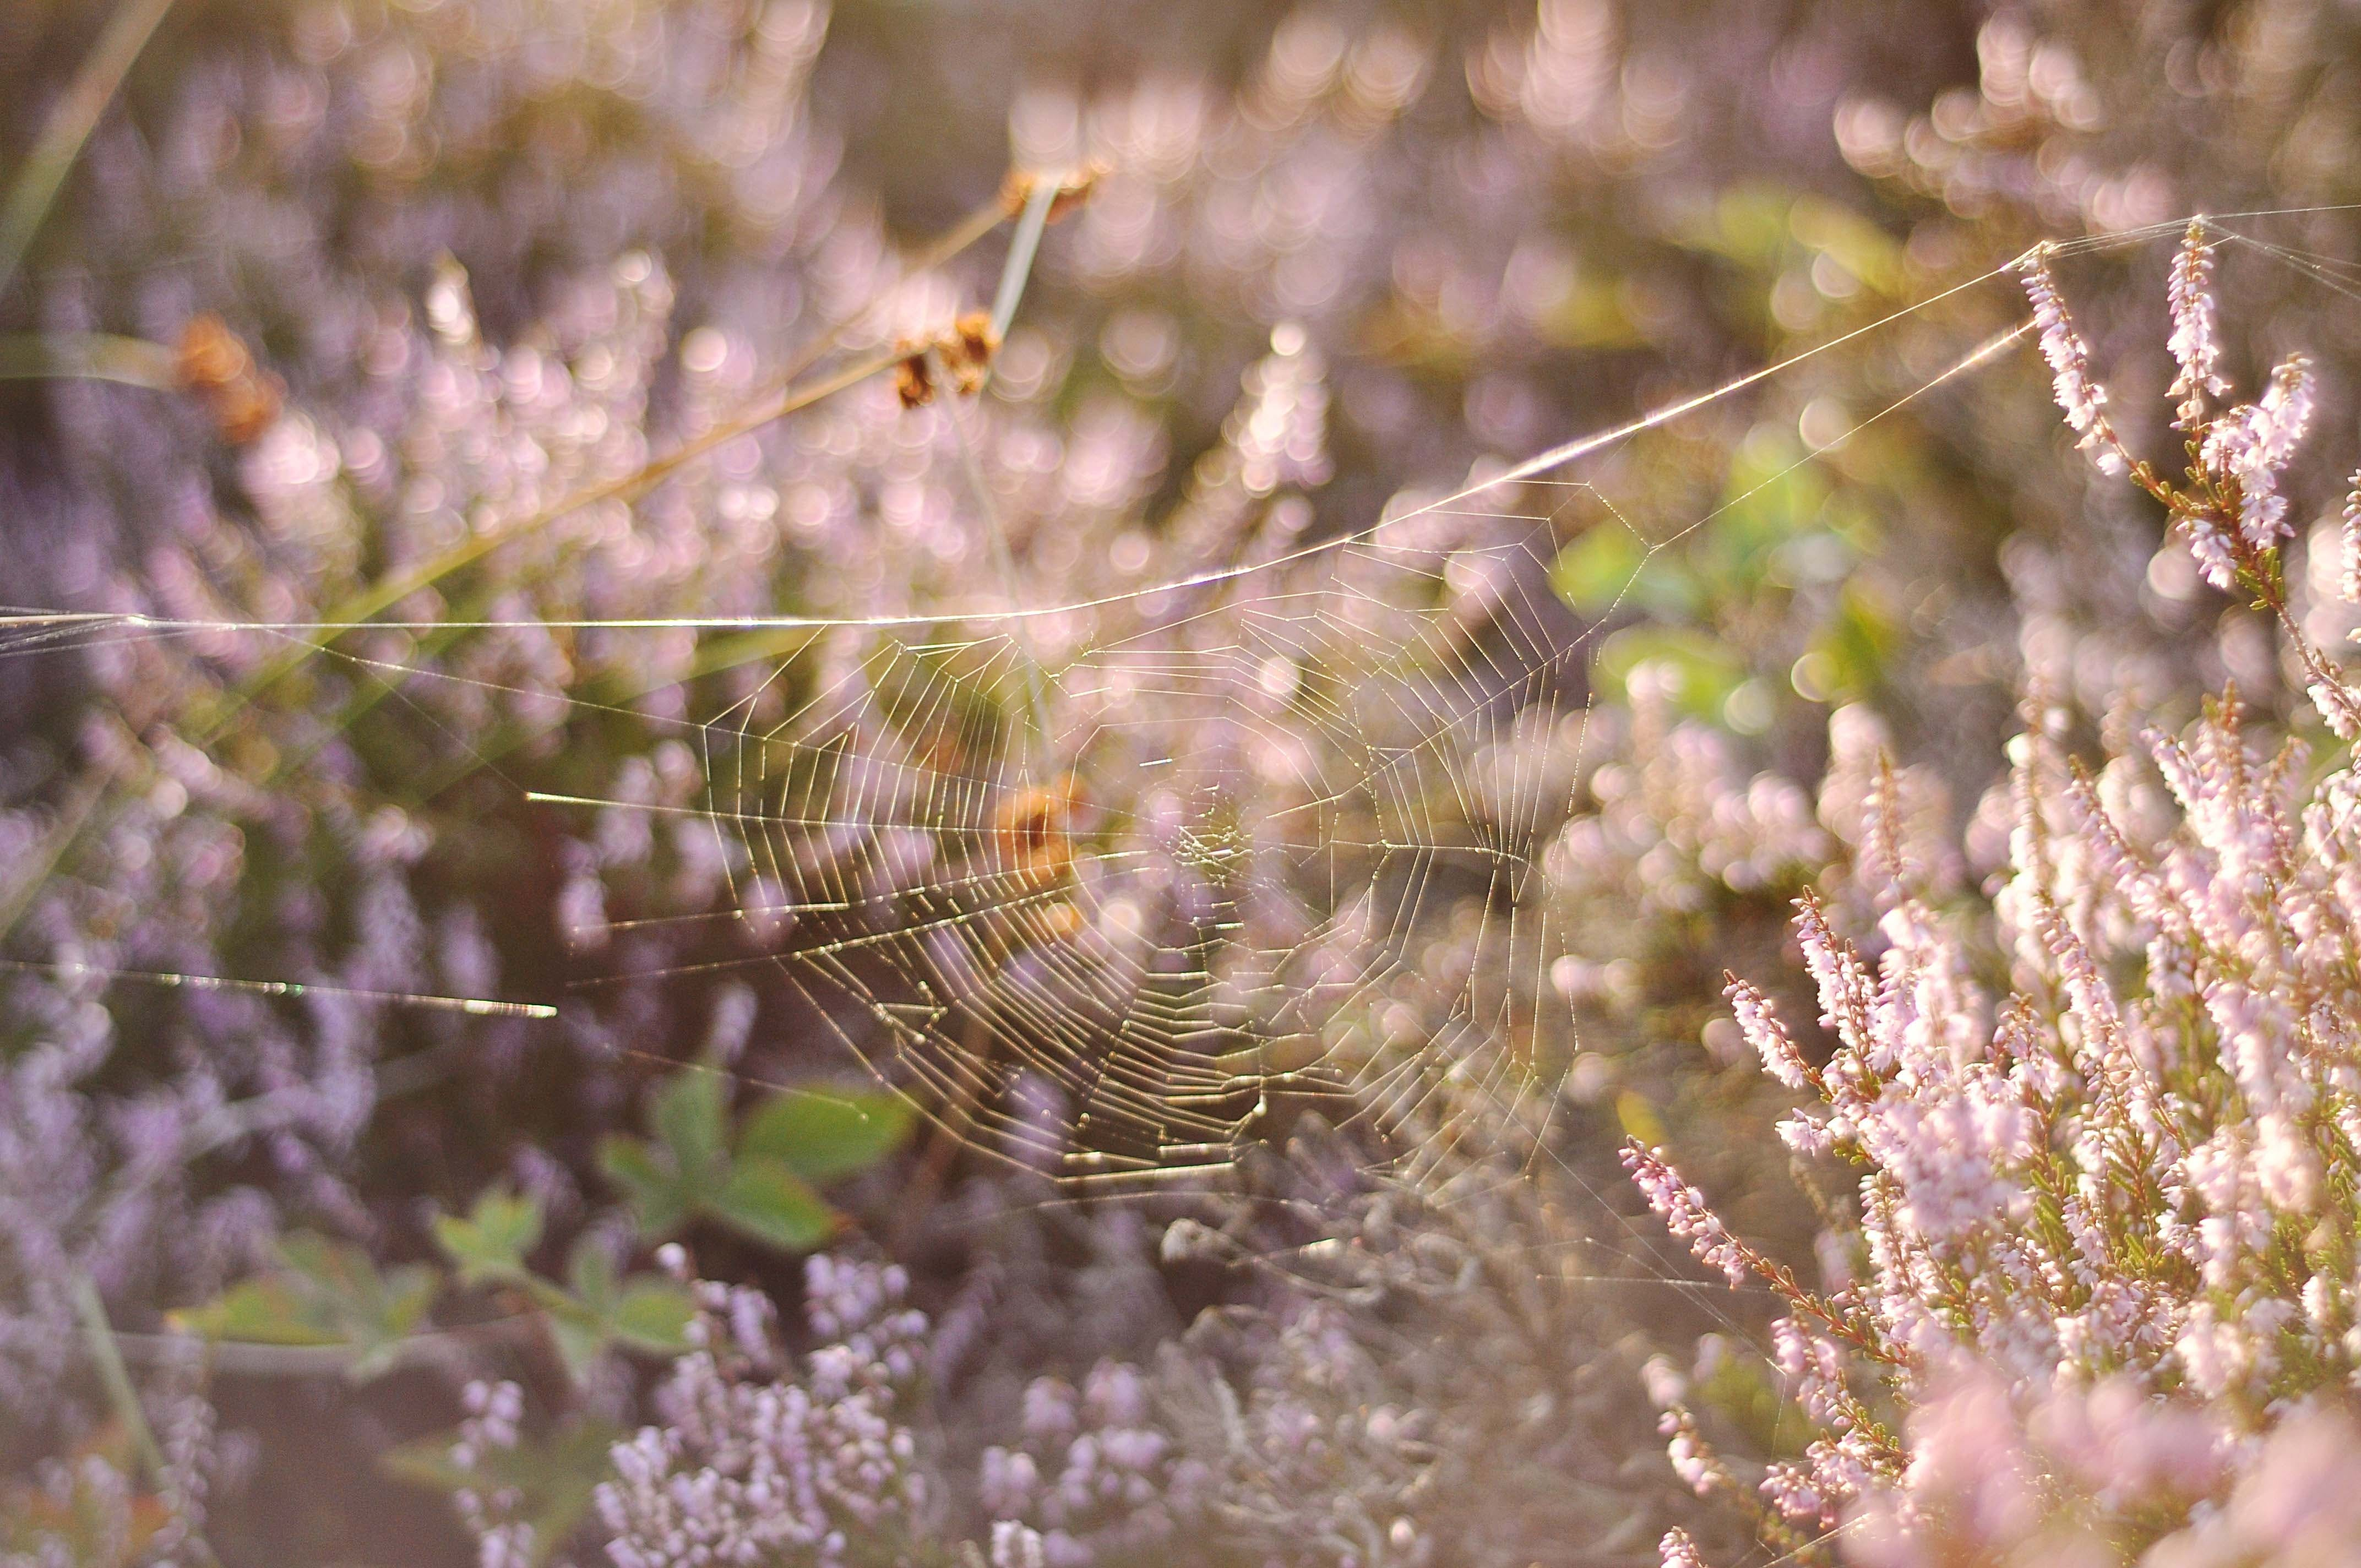 White Spider Web on Flower Field in Close-up Photography